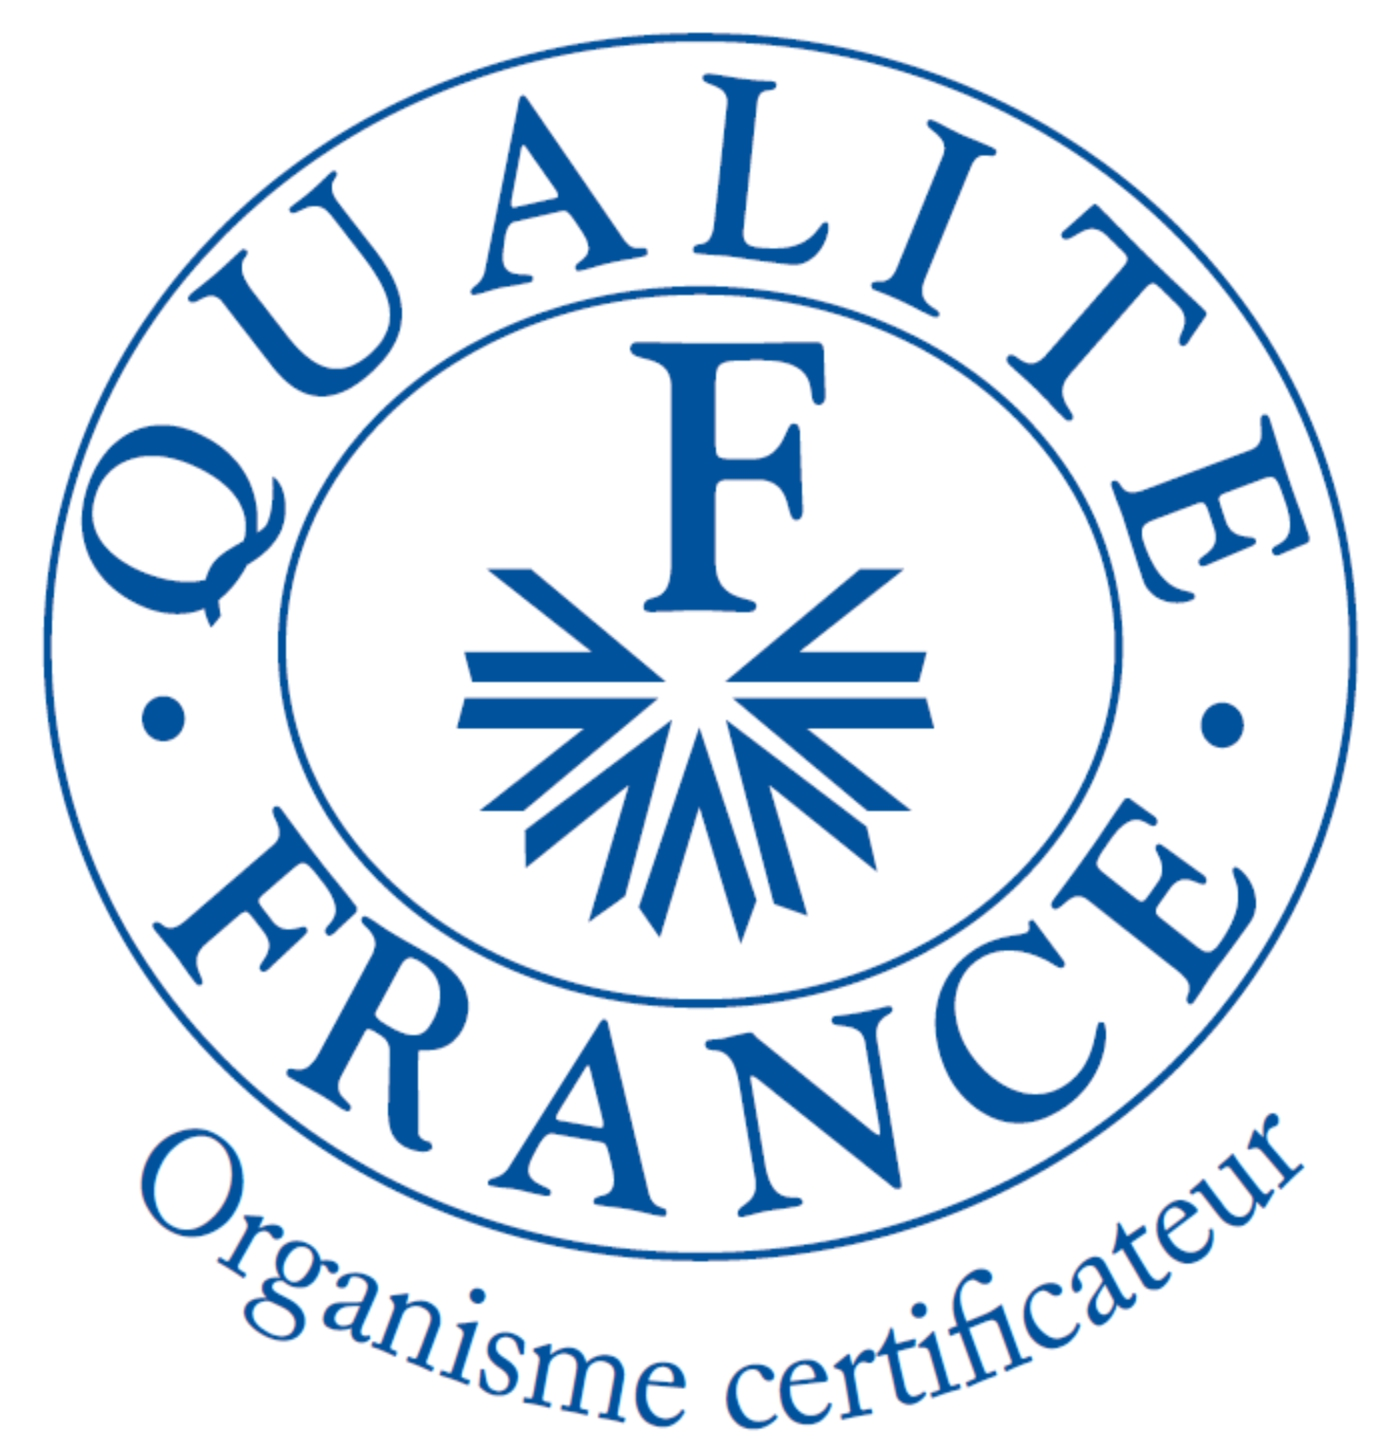 Certificat qualité france